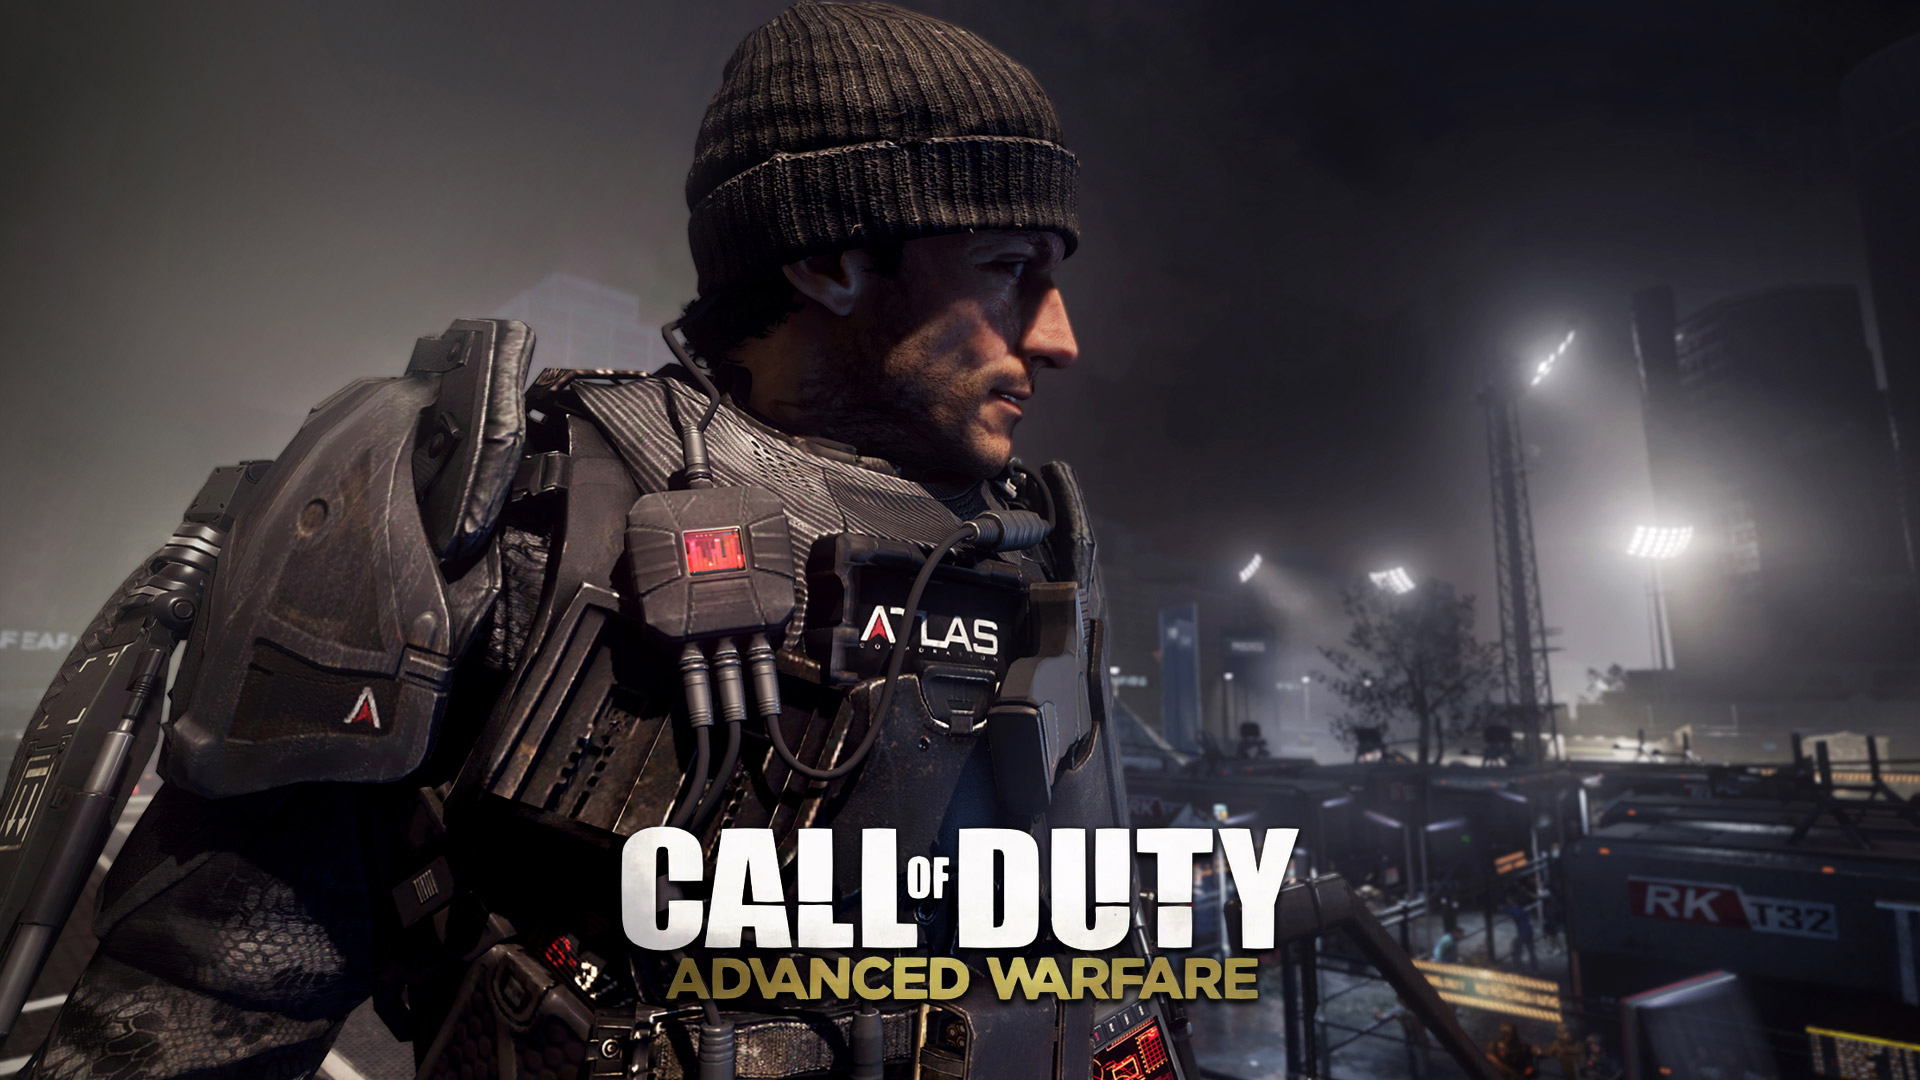 Photo of Inca un an de declin pentru Call of Duty?